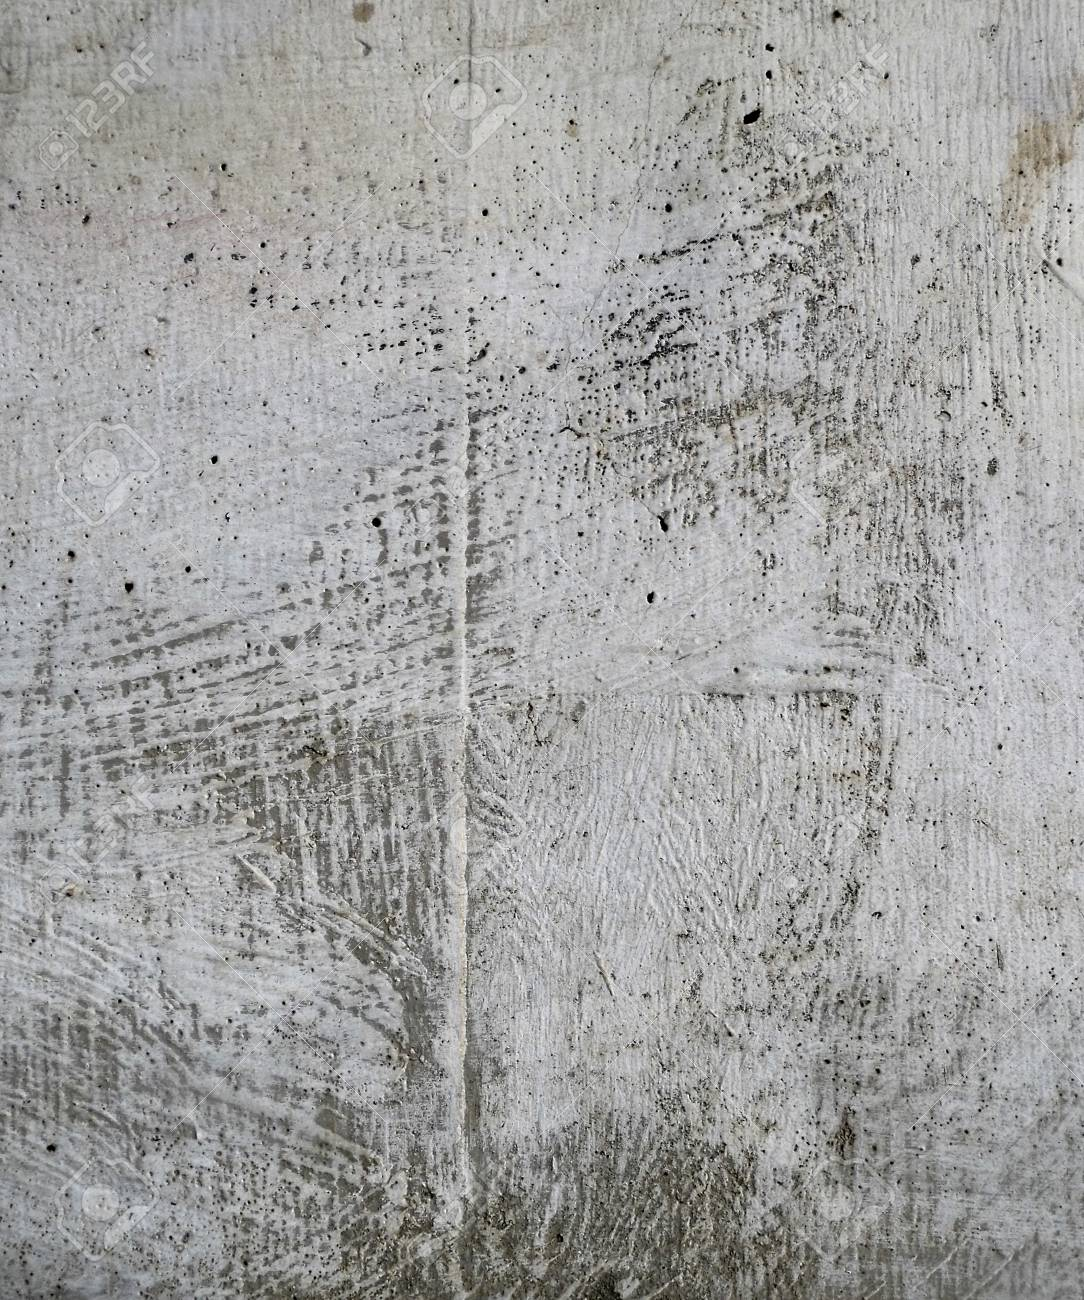 Rough Paint Marks On Concrete Surface Texture Painted Concrete